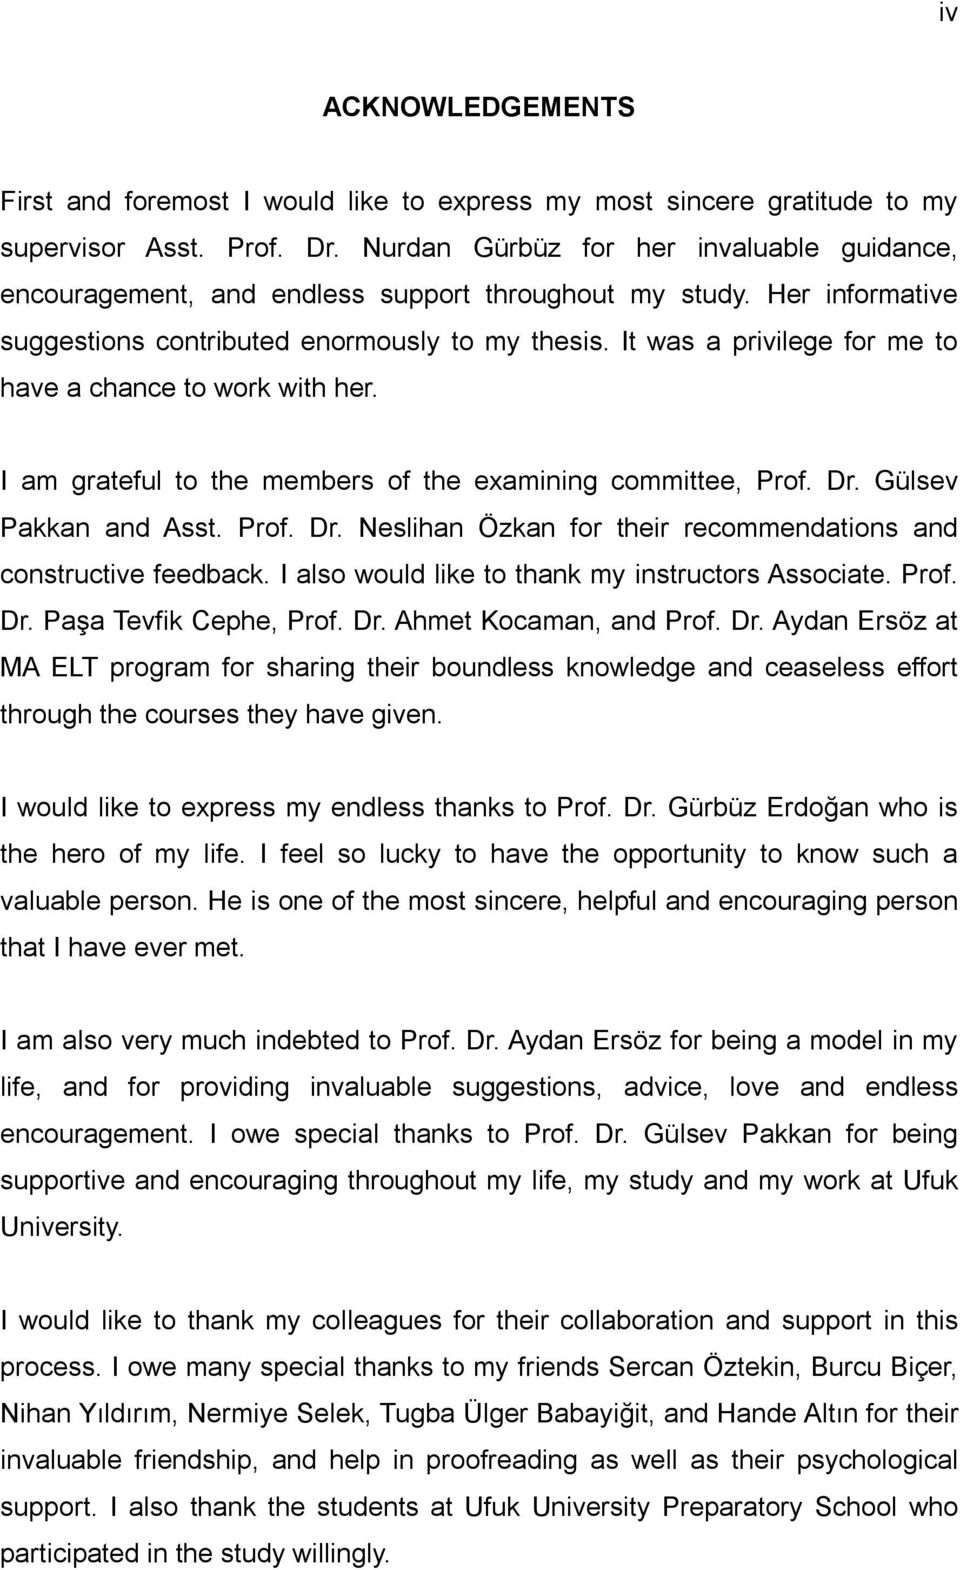 It was a privilege for me to have a chance to work with her. I am grateful to the members of the examining committee, Prof. Dr. Gülsev Pakkan and Asst. Prof. Dr. Neslihan Özkan for their recommendations and constructive feedback.